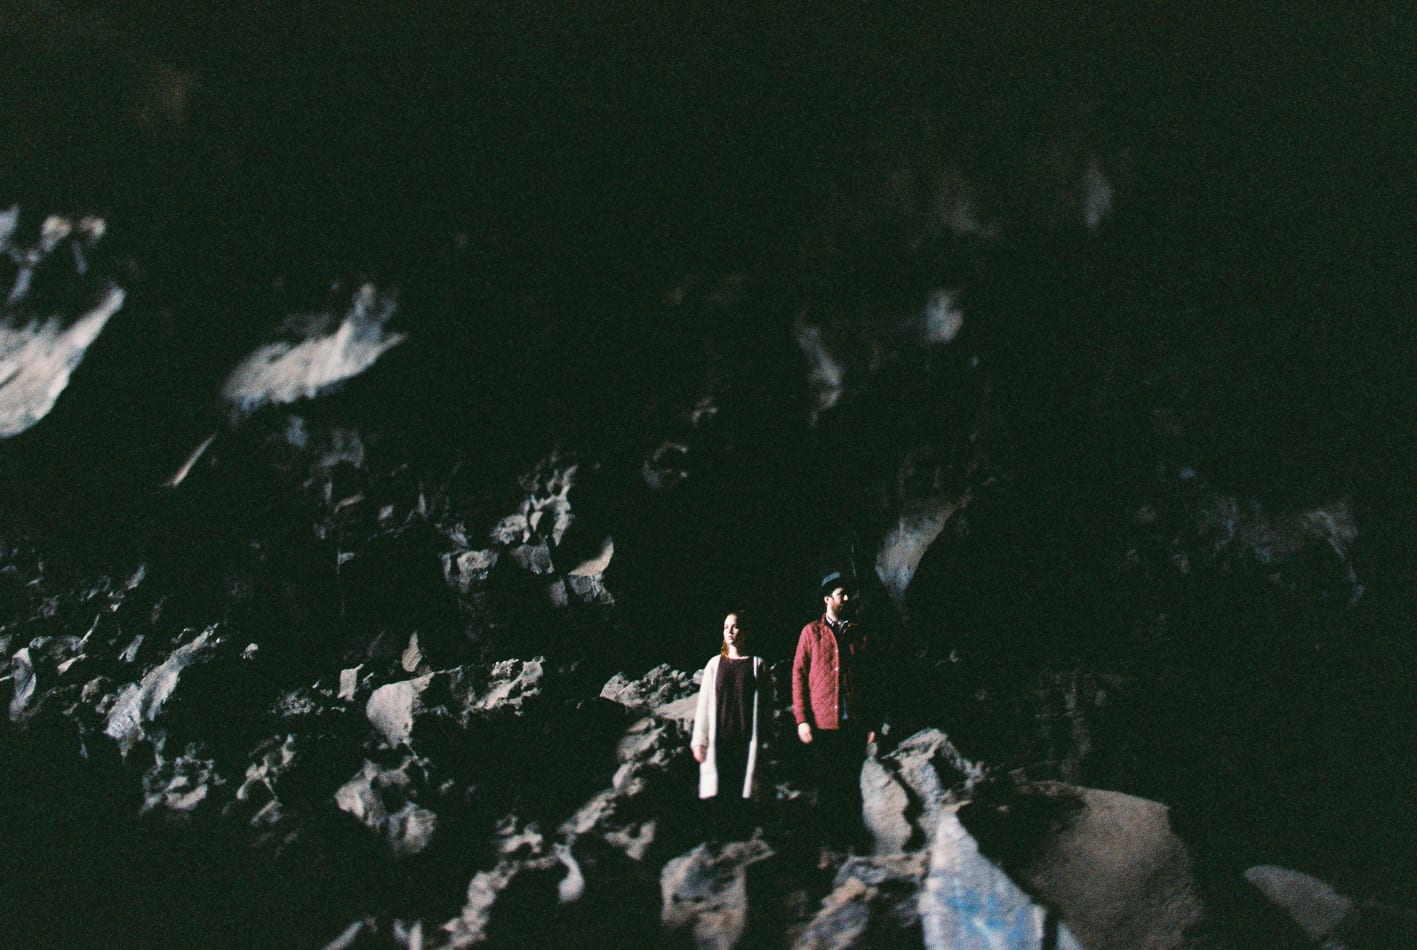 northern-california-film-photography-plutos-cave-5